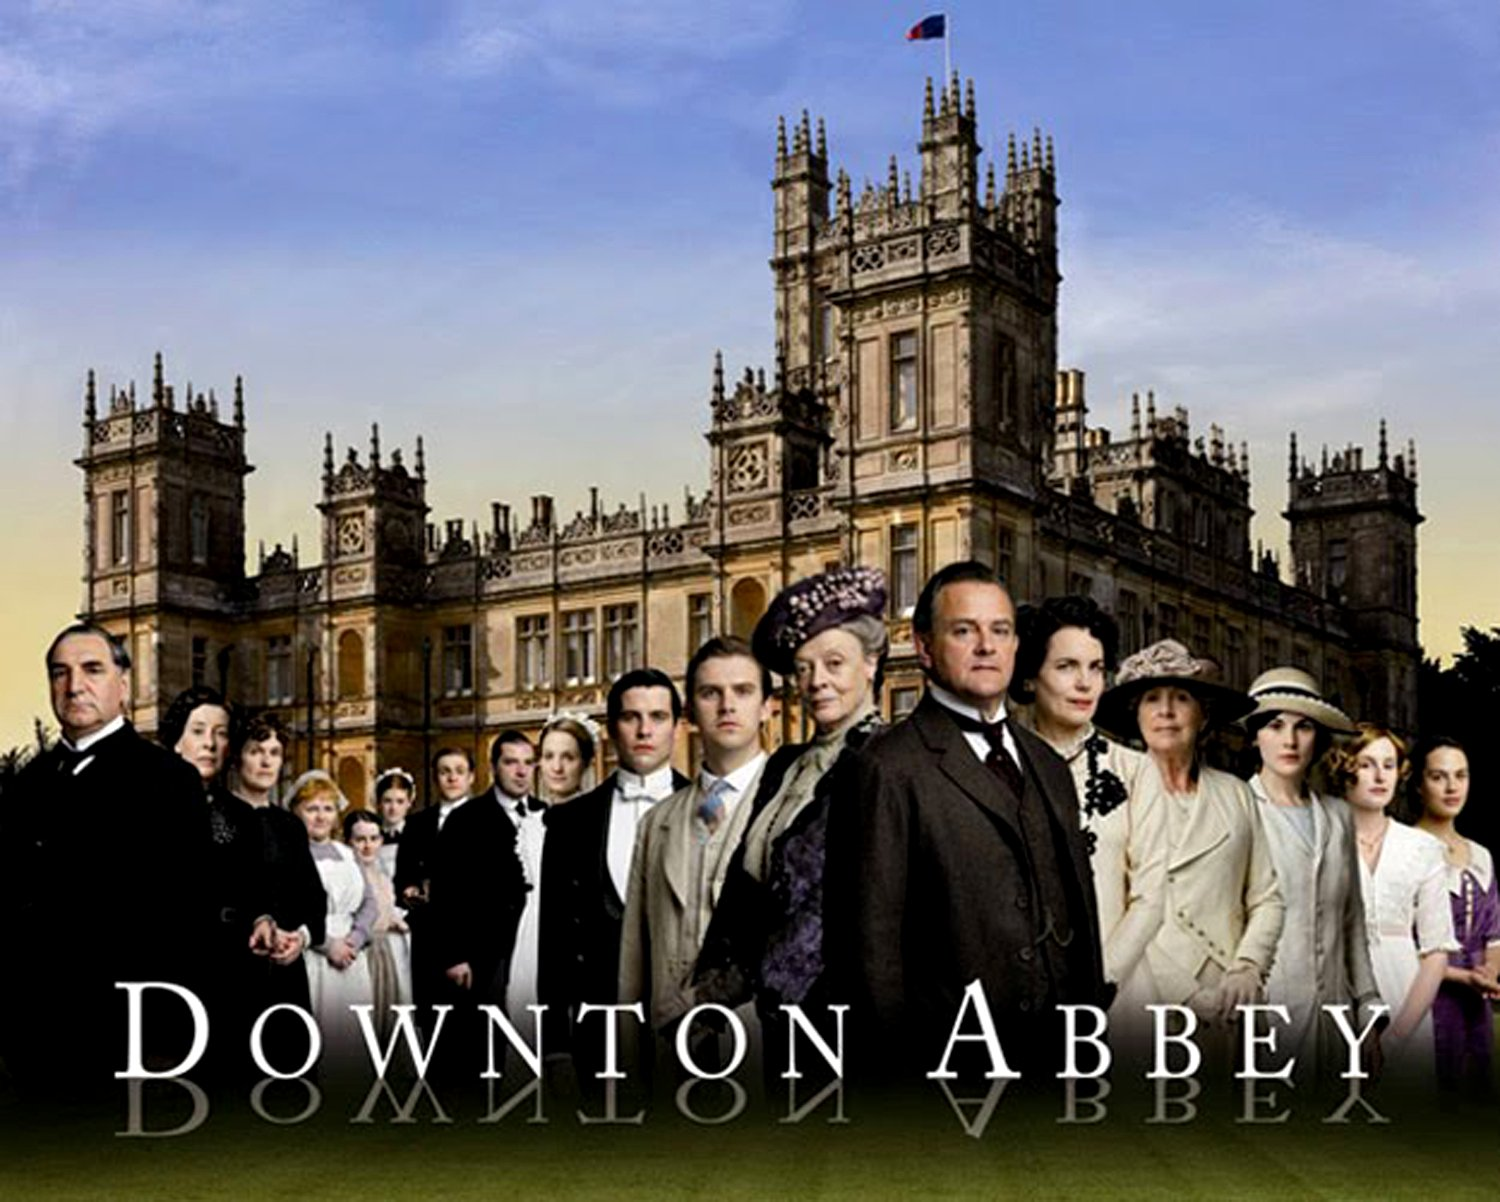 Downton Abbey 1 Google image from http://faithandheritage.com/wp-content/uploads/2013/05/DowntonAbbey1.jpg